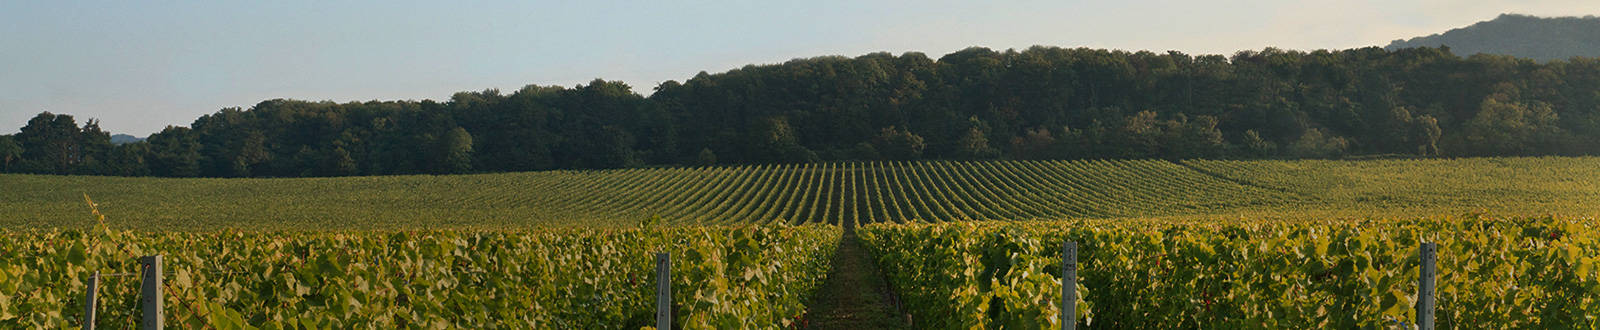 Vineyards header banner